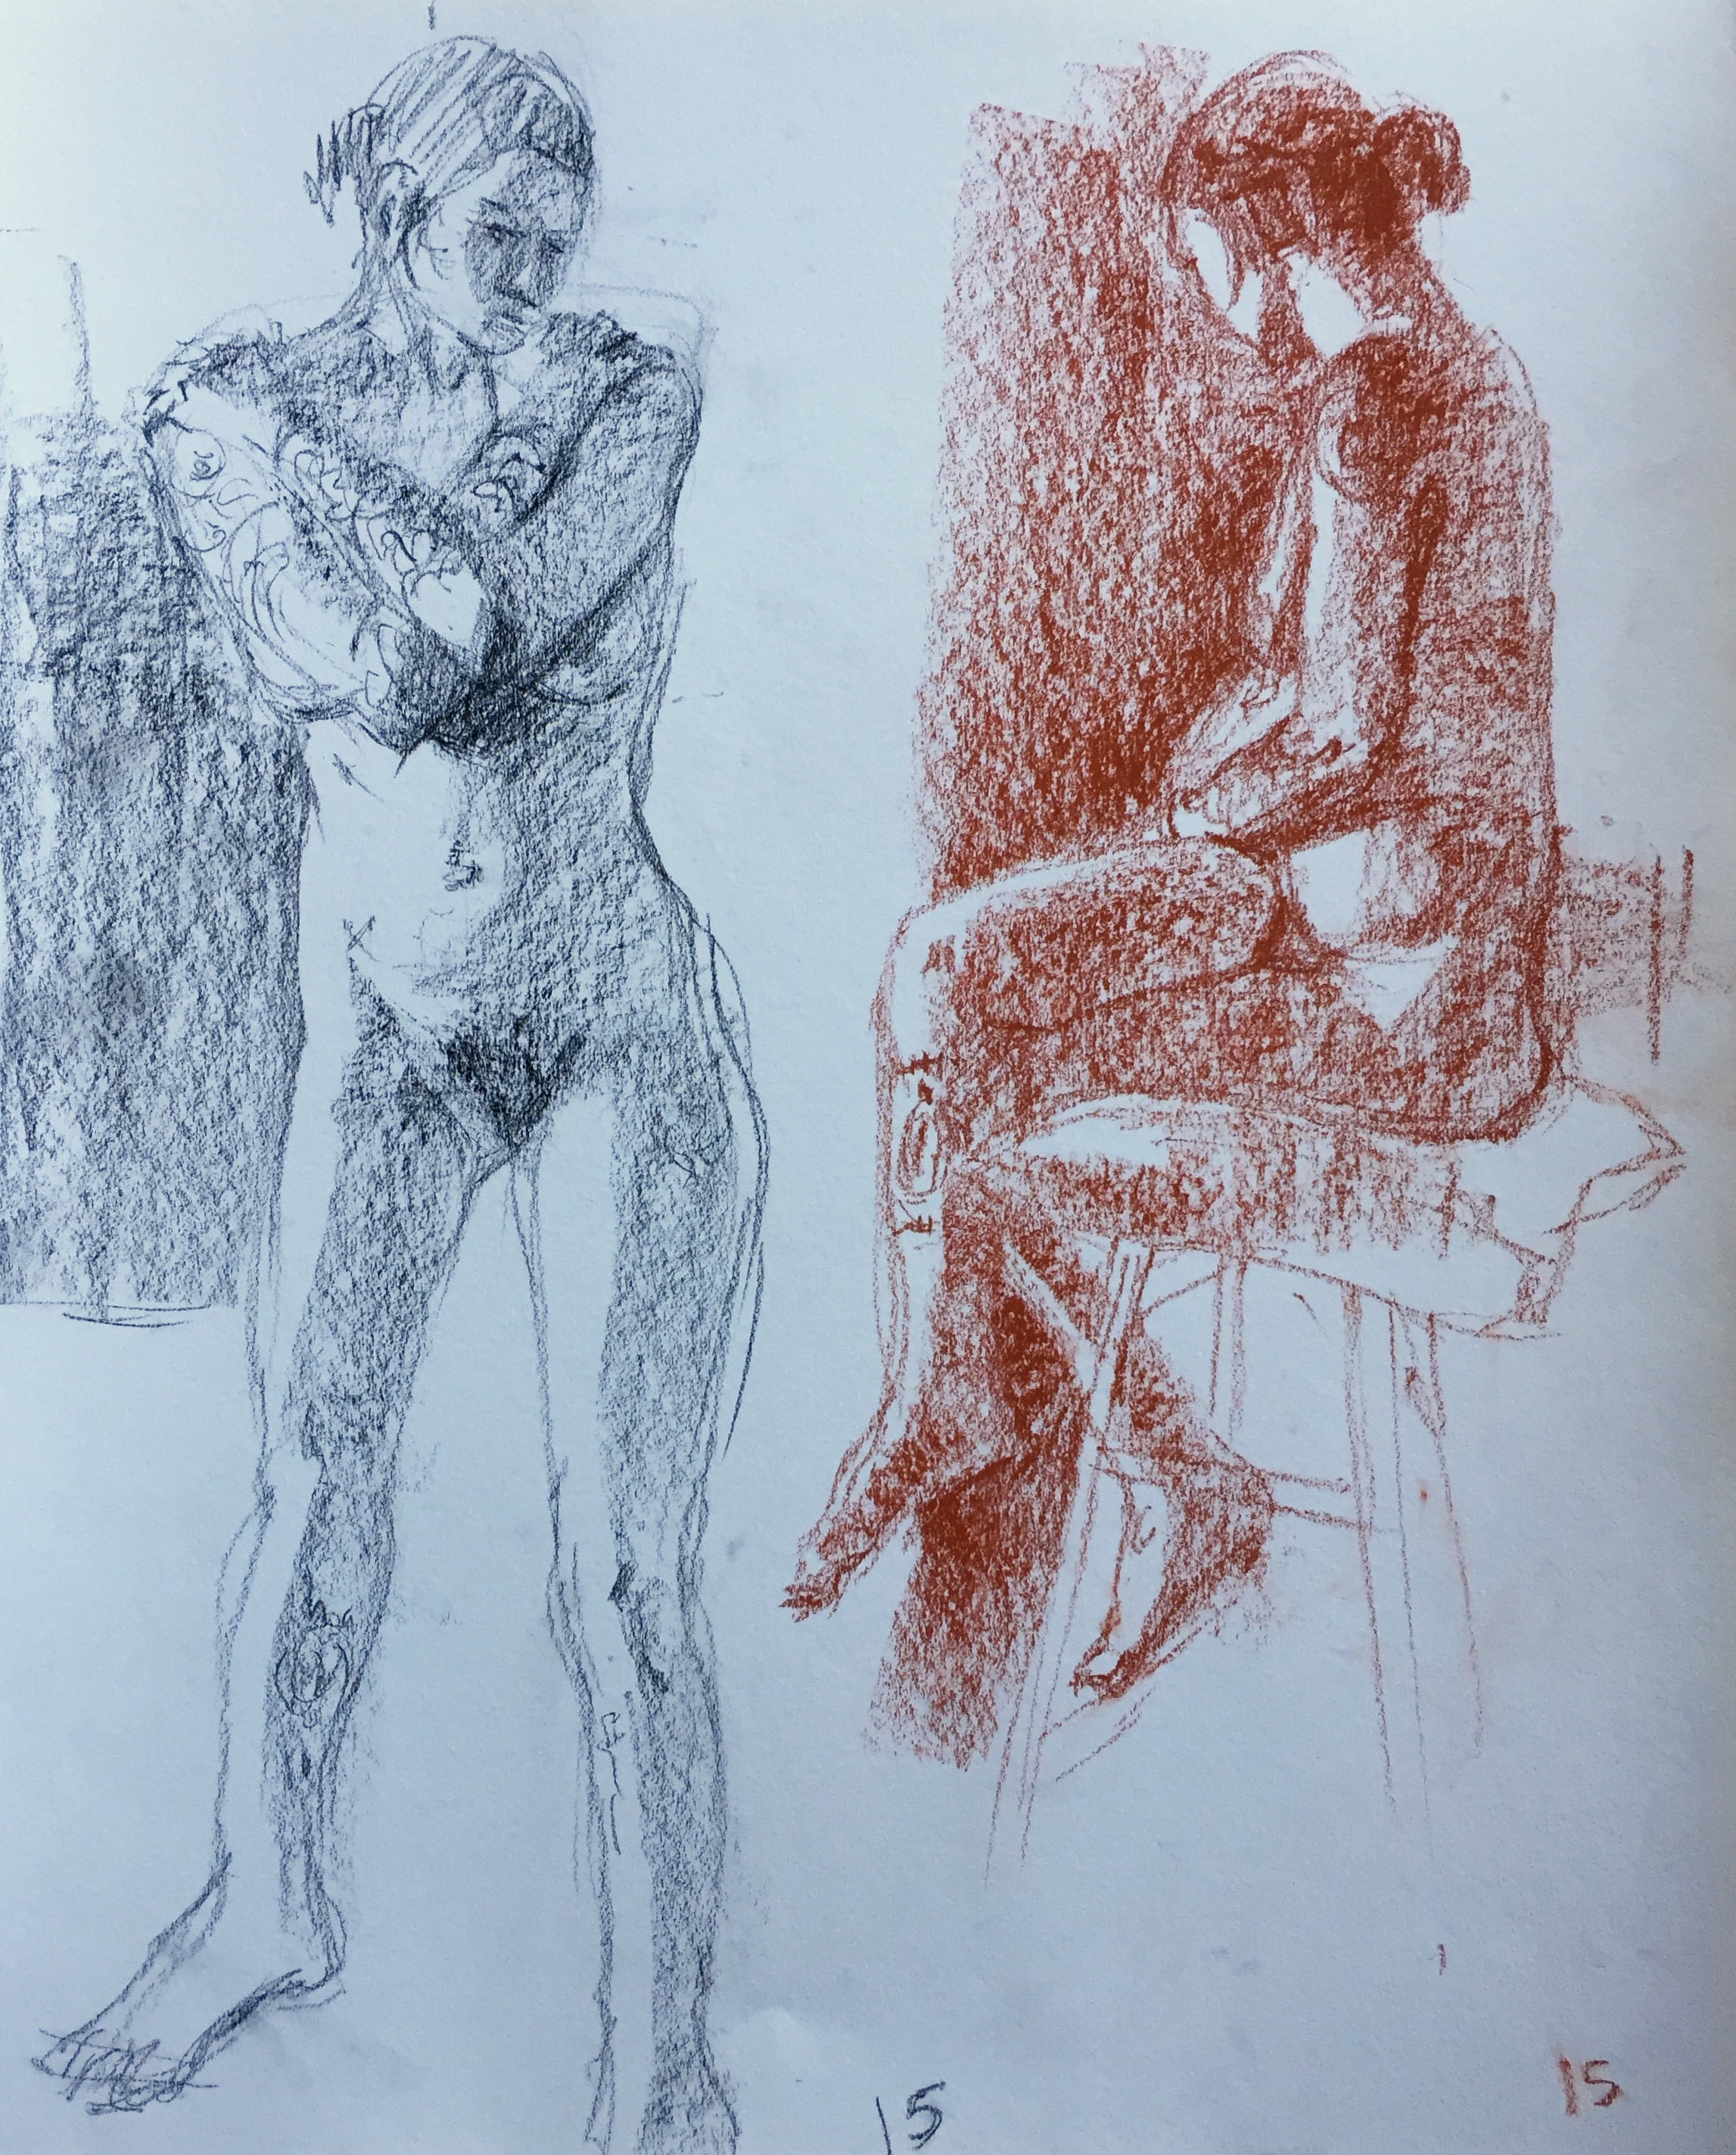 Life drawing: 15-minute poses